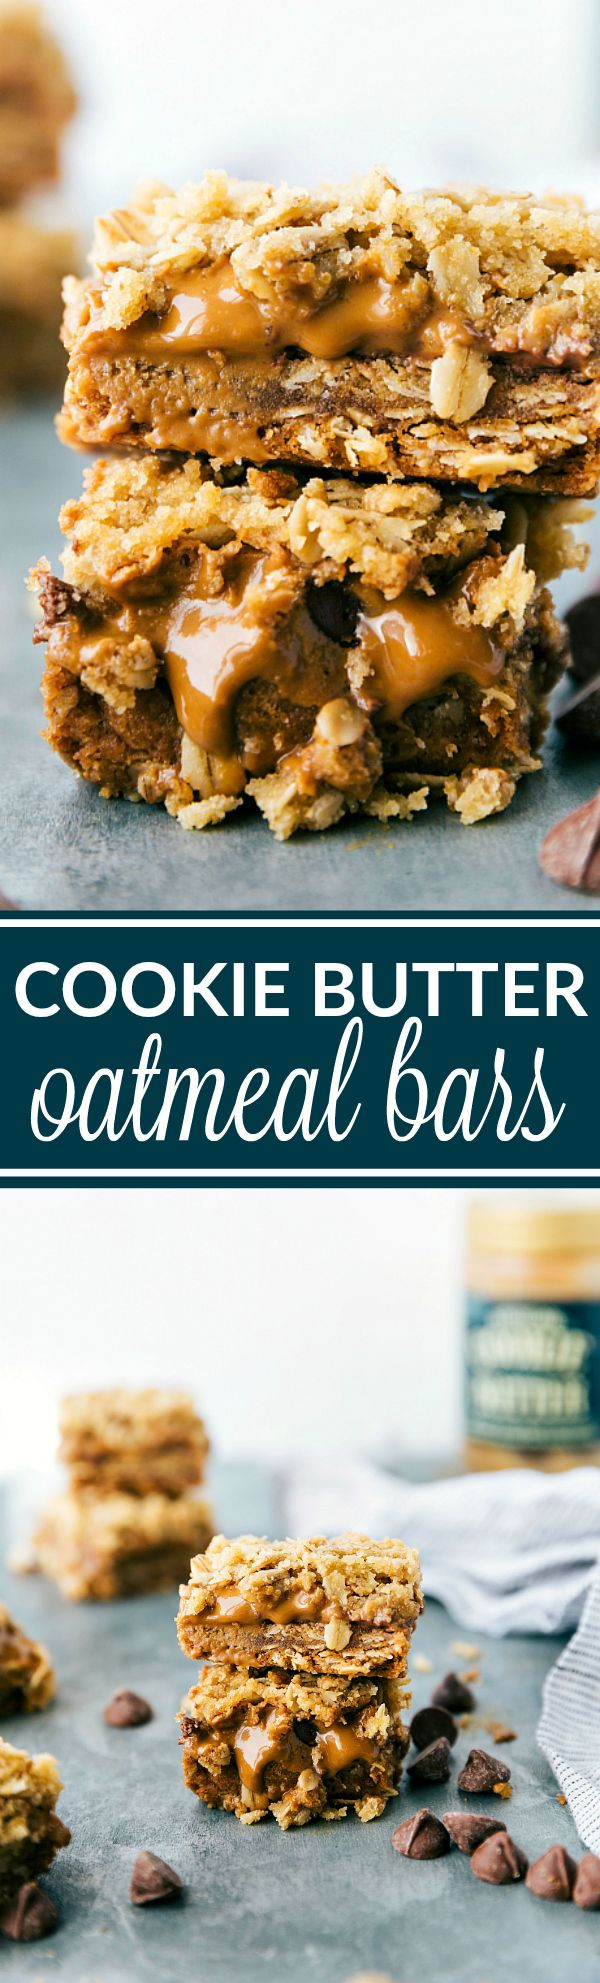 Simple-to-make oatmeal bars with a gooey cookie butter (biscoff) and milk chocolate chip center. These cookie butter oatmeal bars are sure to be a huge hit! These bars are like the famous Carmelitas, but with COOKIE BUTTER instead! via chelseasmessyapron.com